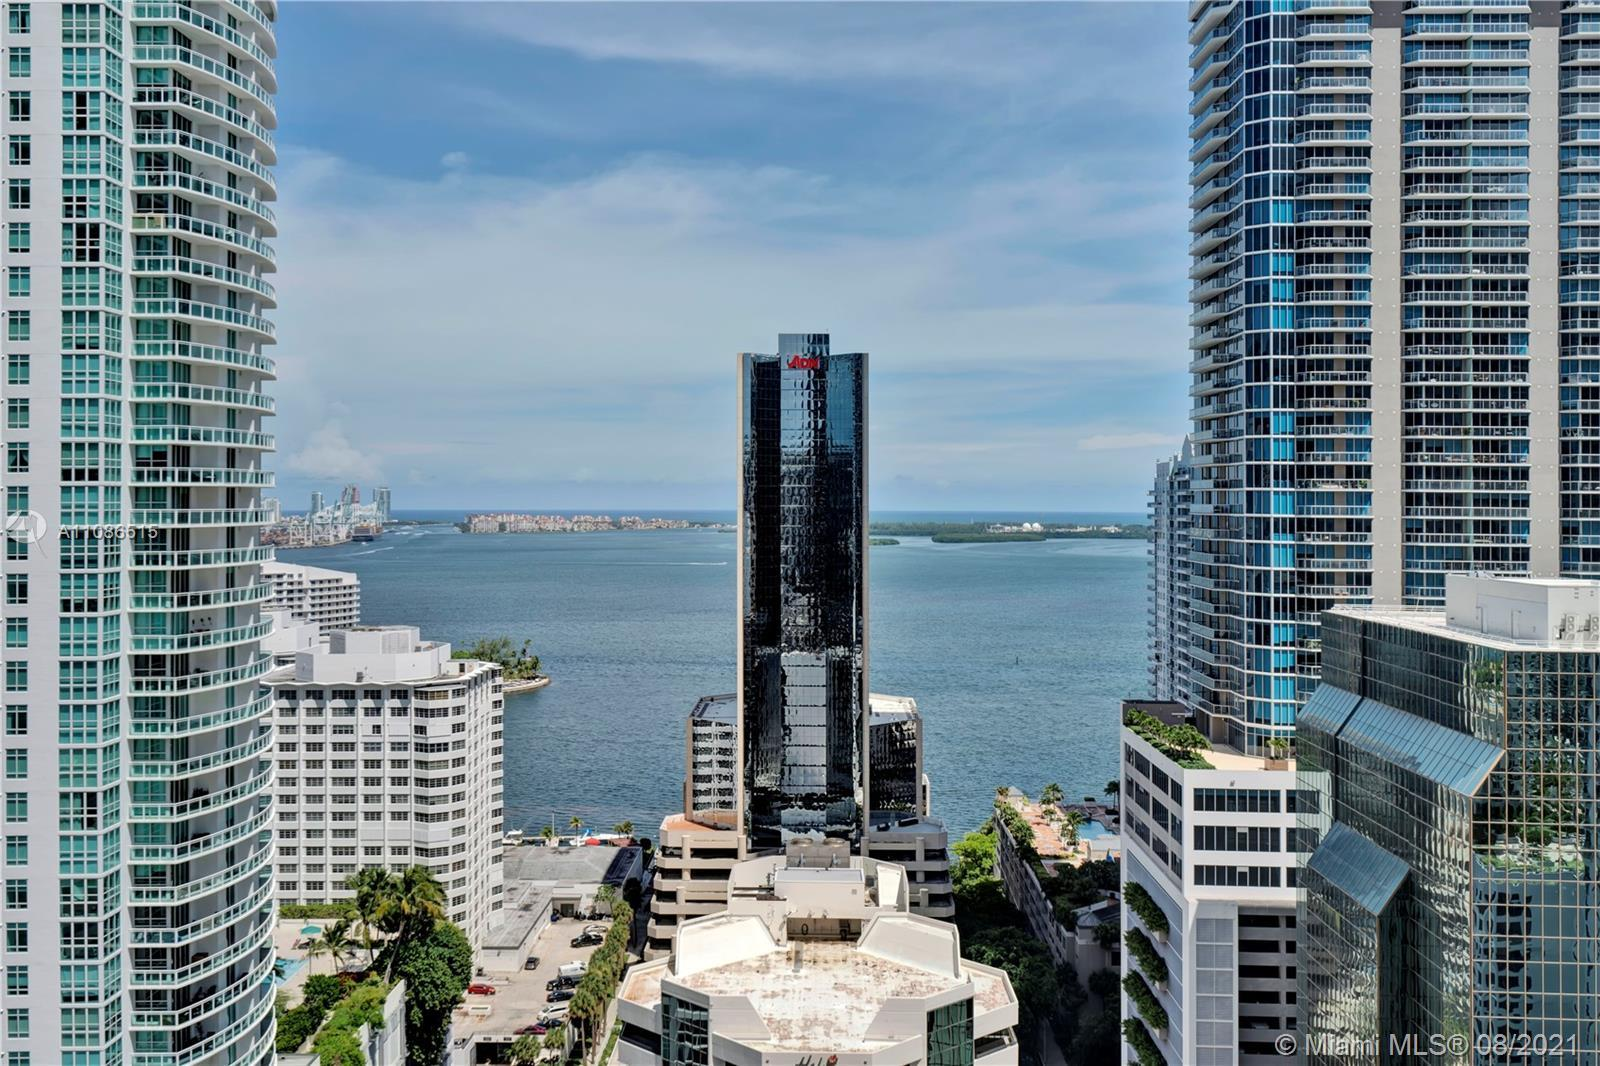 Enjoy trendy Brickell life in the heart of the action, steps from restaurants, shopping and entertai